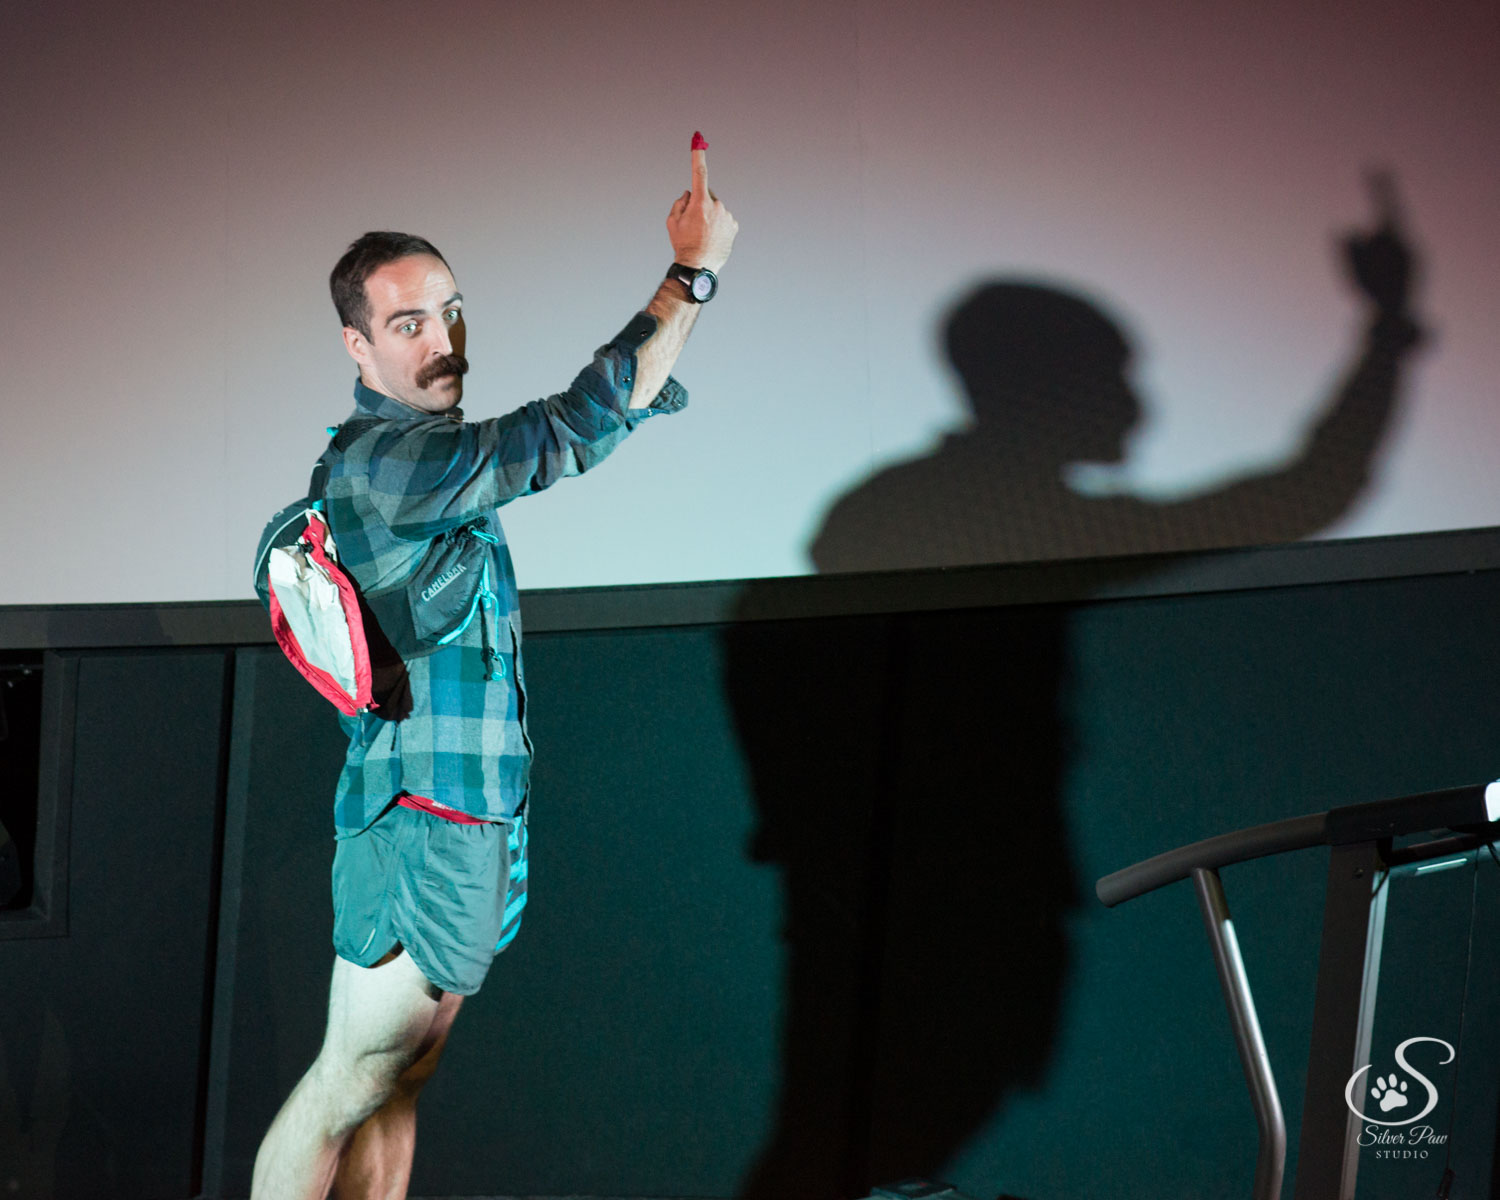 Originally conceived as a graduate thesis project at Arizona State University, Move enjoyed runaway success in a three week engagement at ASU before touring to the 2017 Fort Collins Fringe Festival.  Move's  themes of alpinism, fitness and battling addiction struck a chord with Rocky Mountain audiences – it was nominated for Best of the Fest 2017 and won that year's Artists' Choice Award.